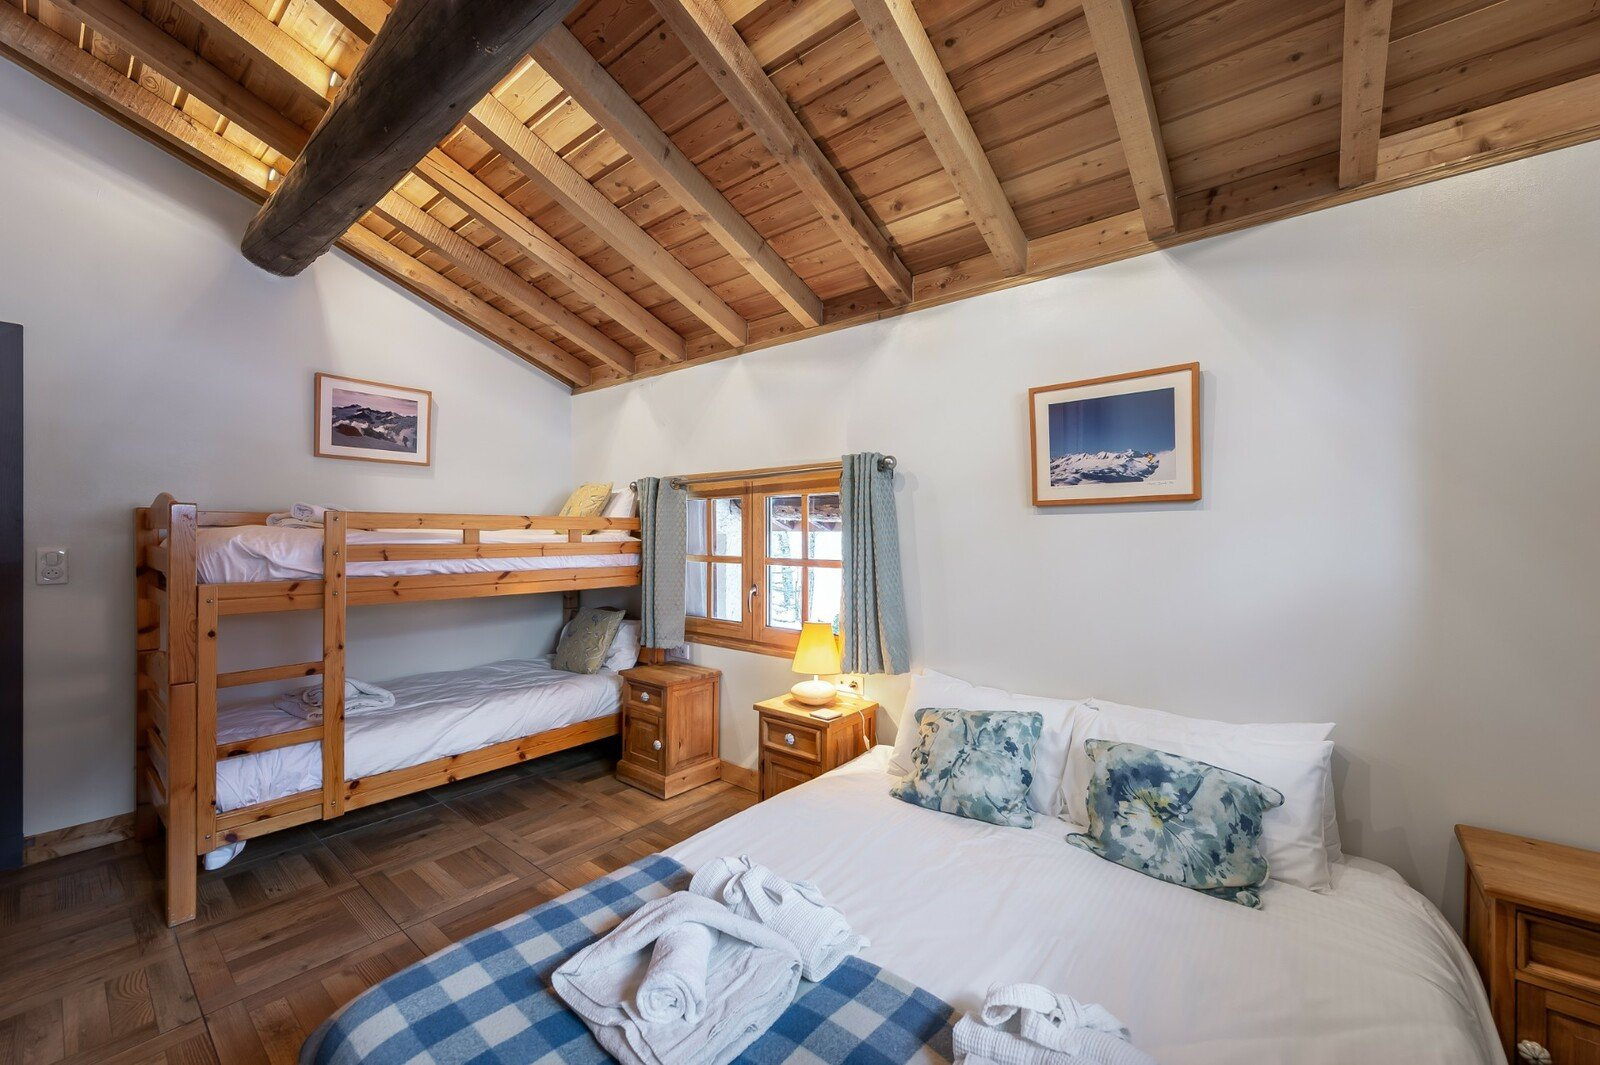 INDIVIDUAL CHALET OVERLOOKING THE VILLAGE OF LA THUILE OF SAINTE-FOY-TARENTAISE